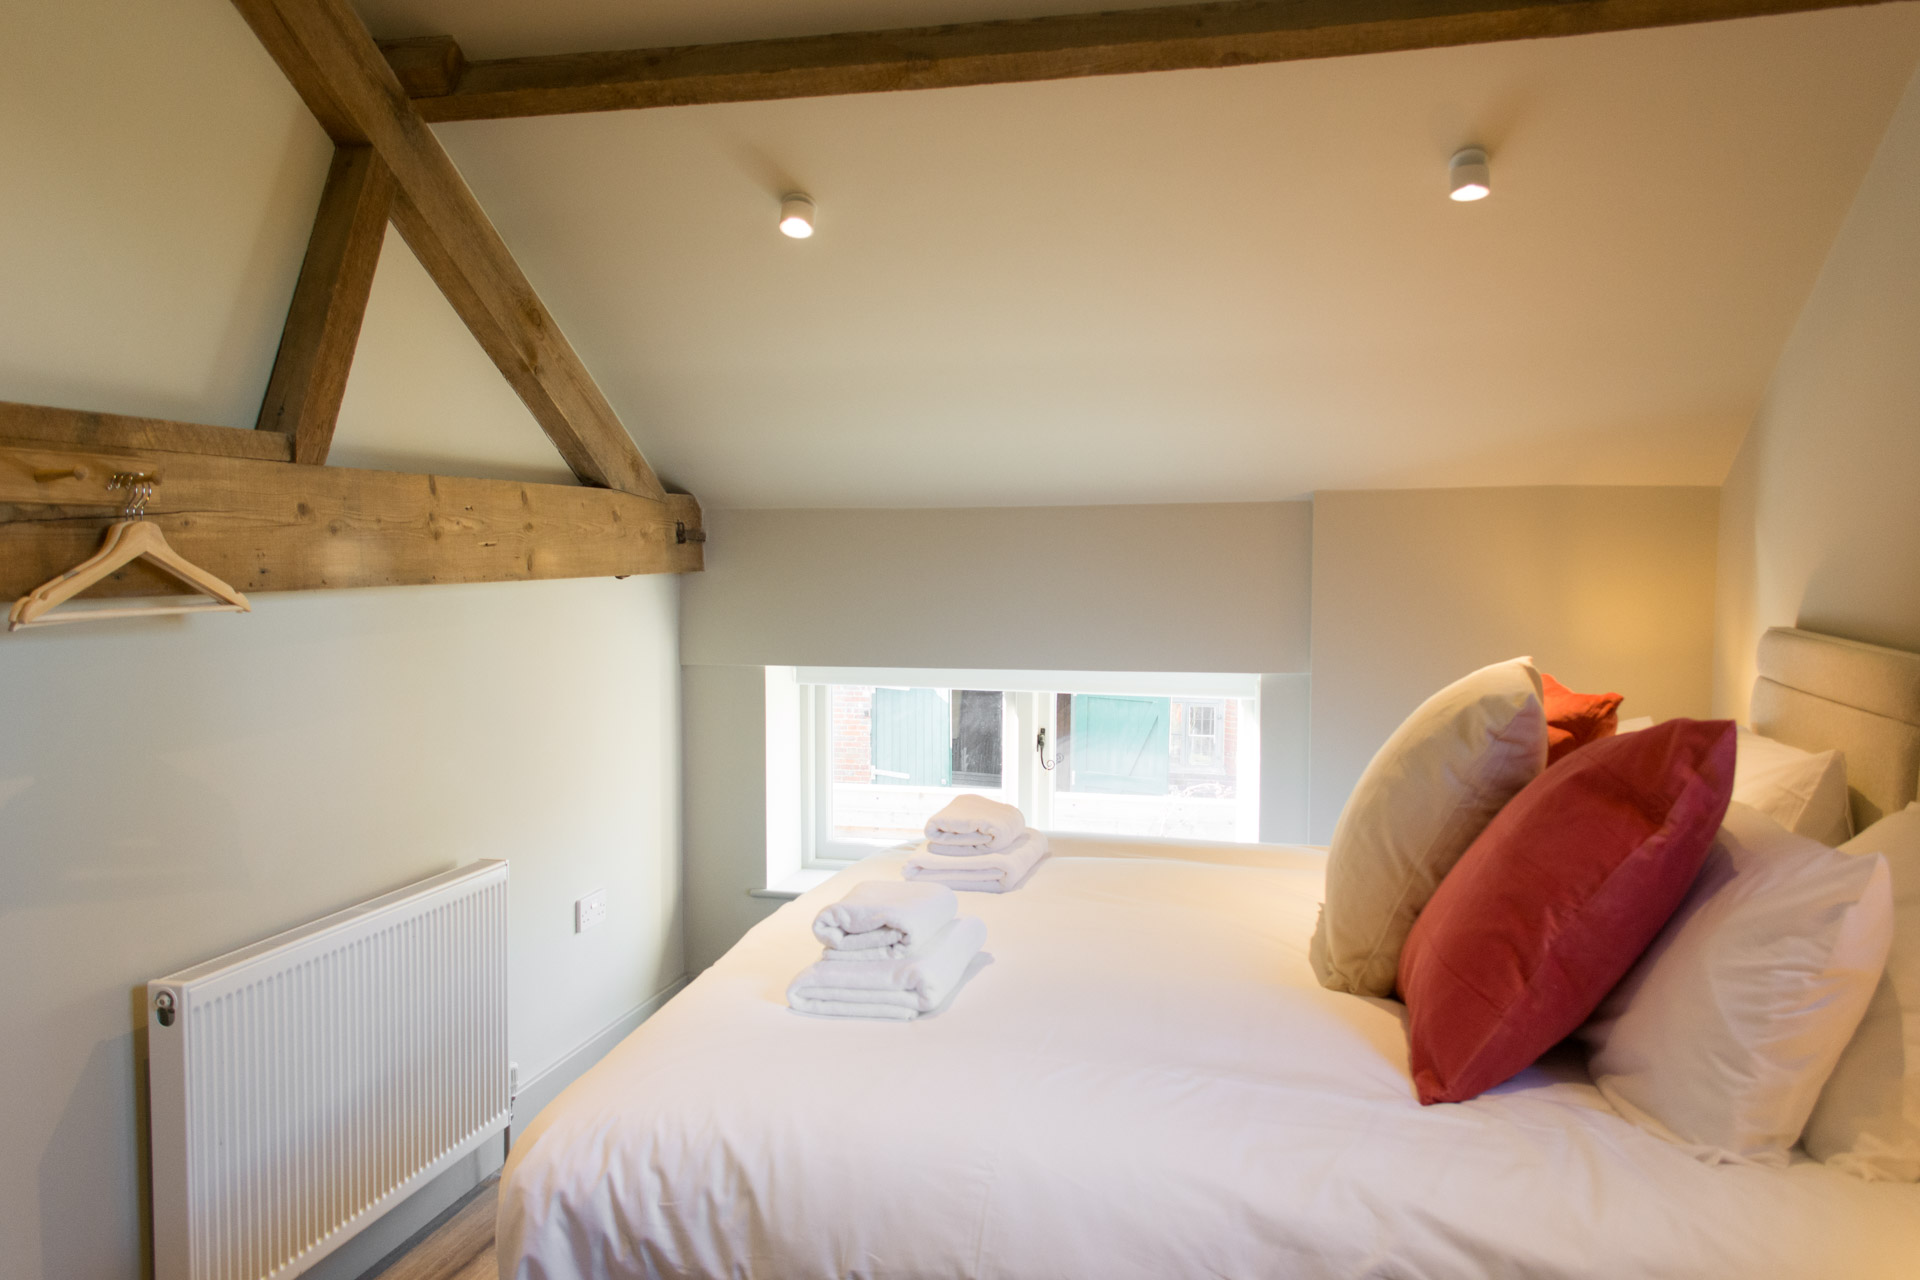 Super-king bedroom showing interior lights and window.